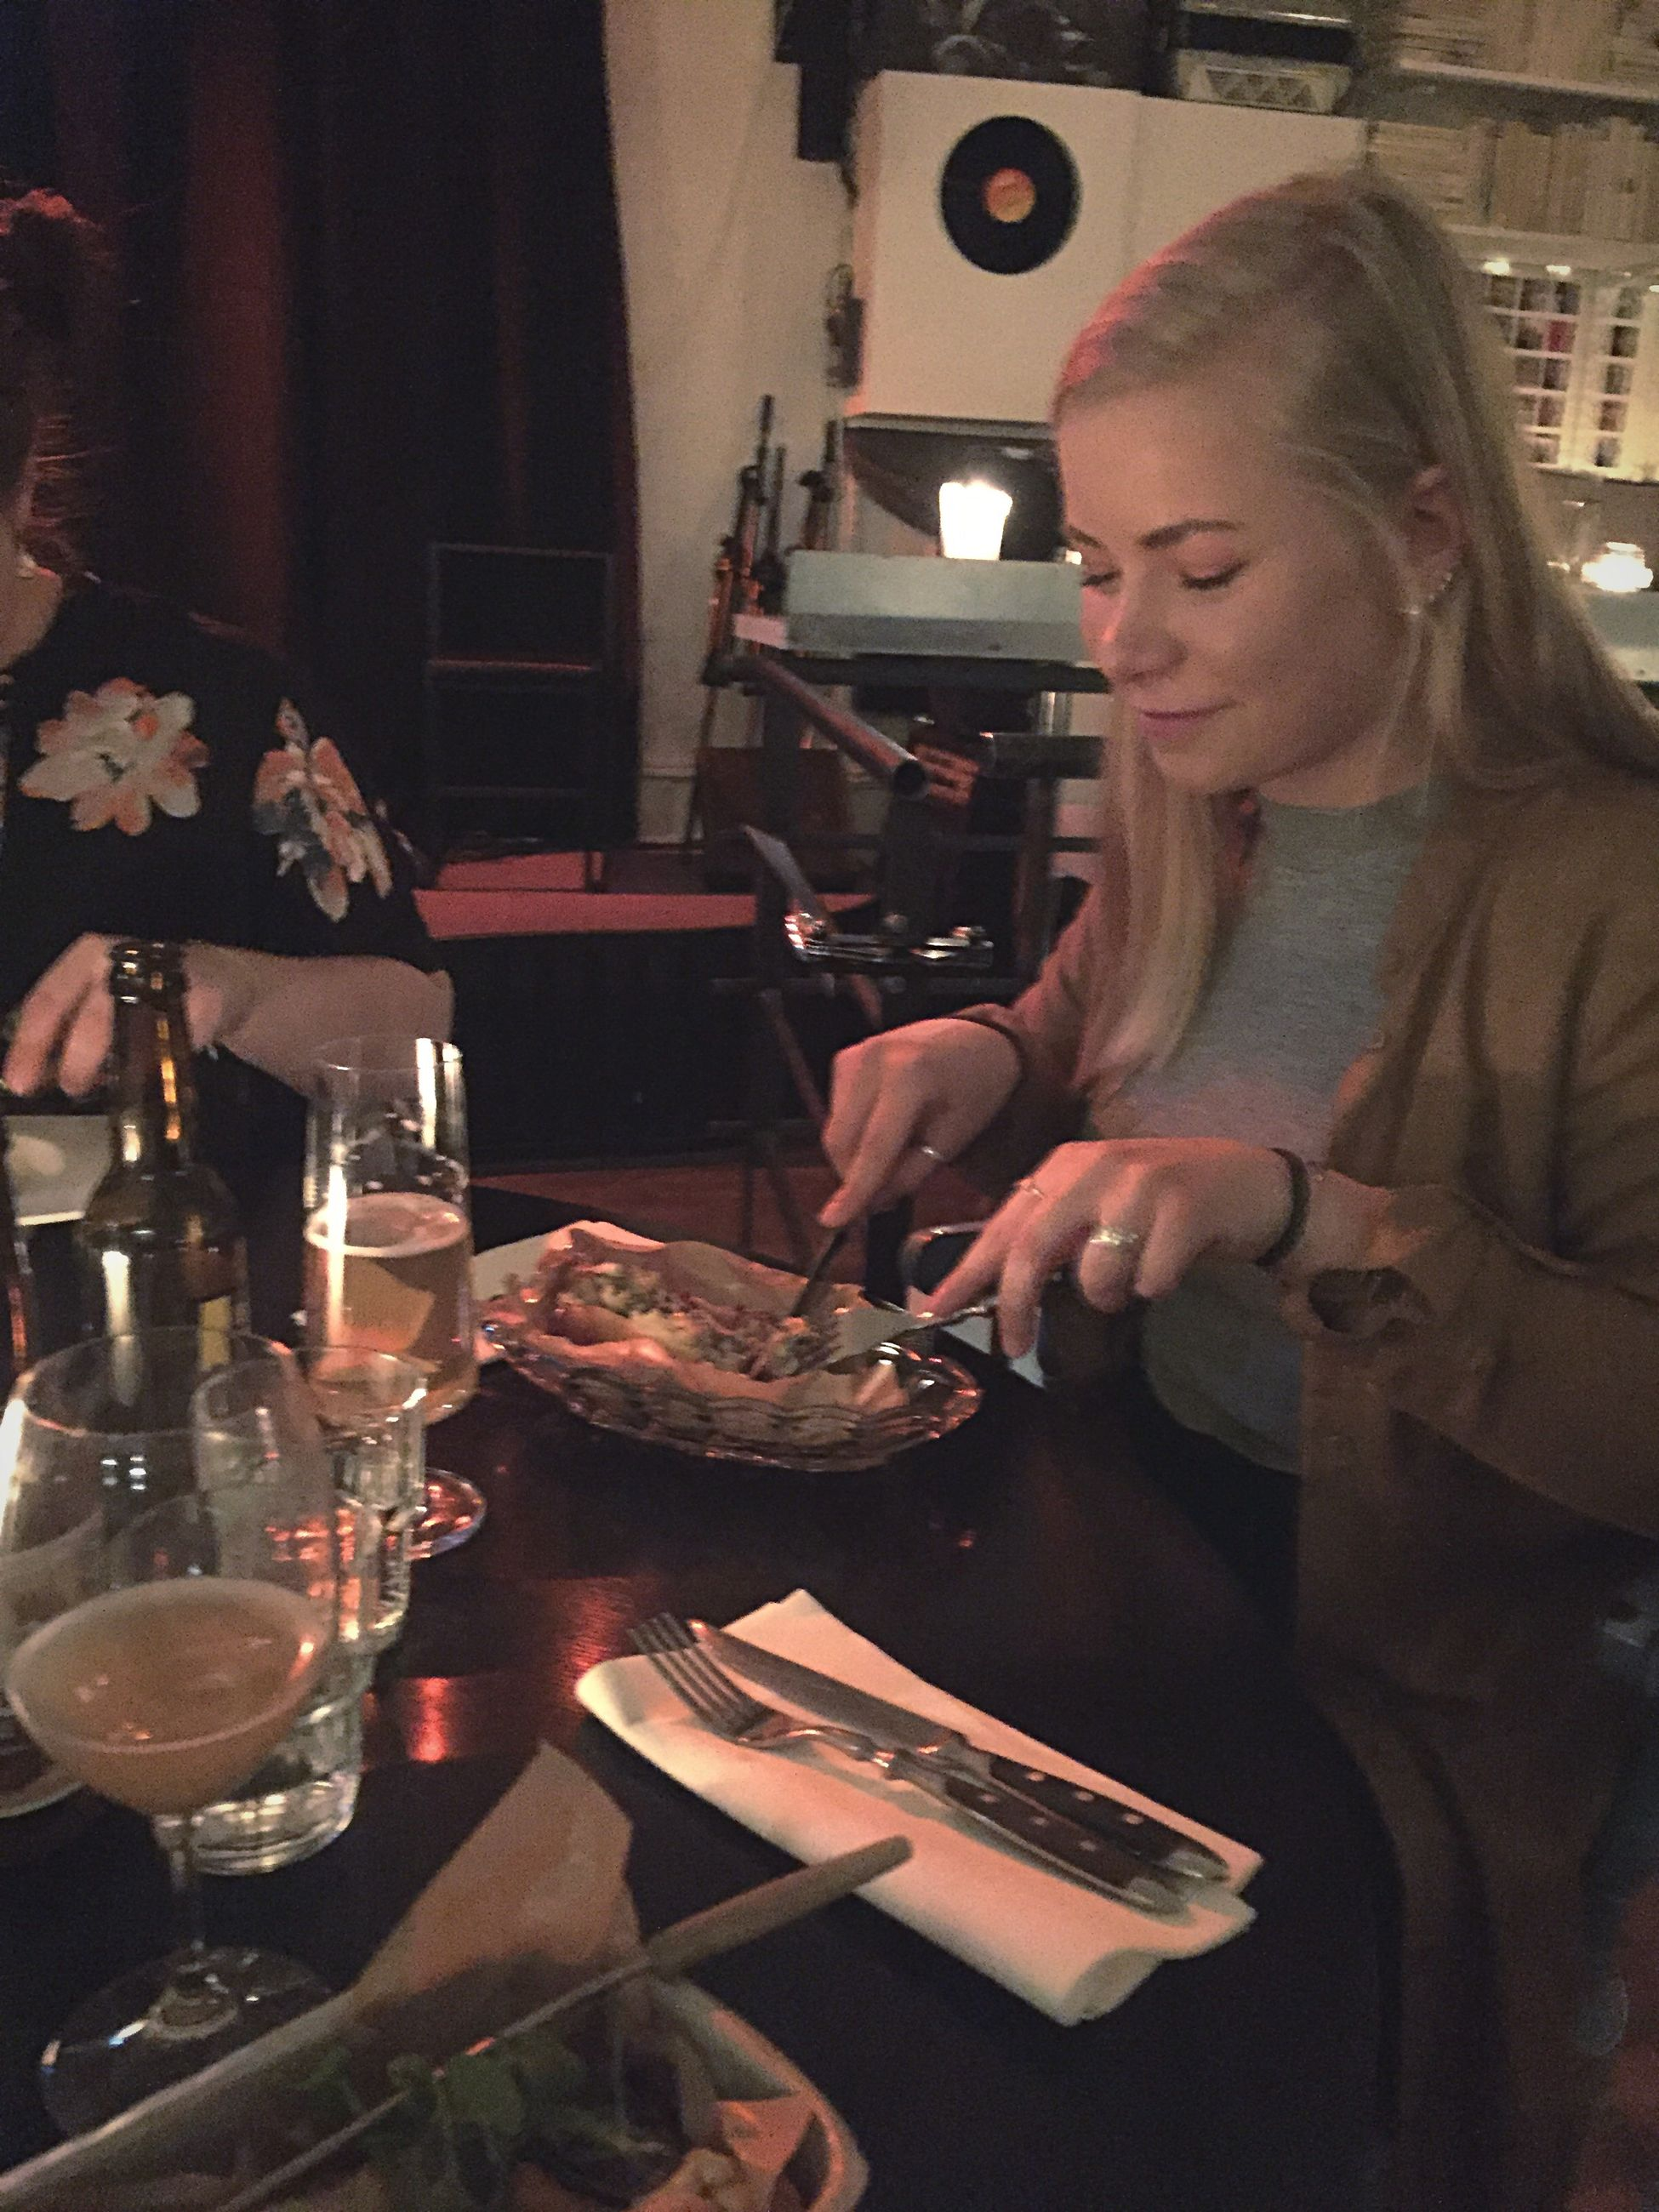 eating, indoors, candid, table, young women, dinner, adults only, adult, young adult, people, lifestyles, women, real people, domestic life, females, food, domestic room, men, one person, brunch, night, only men